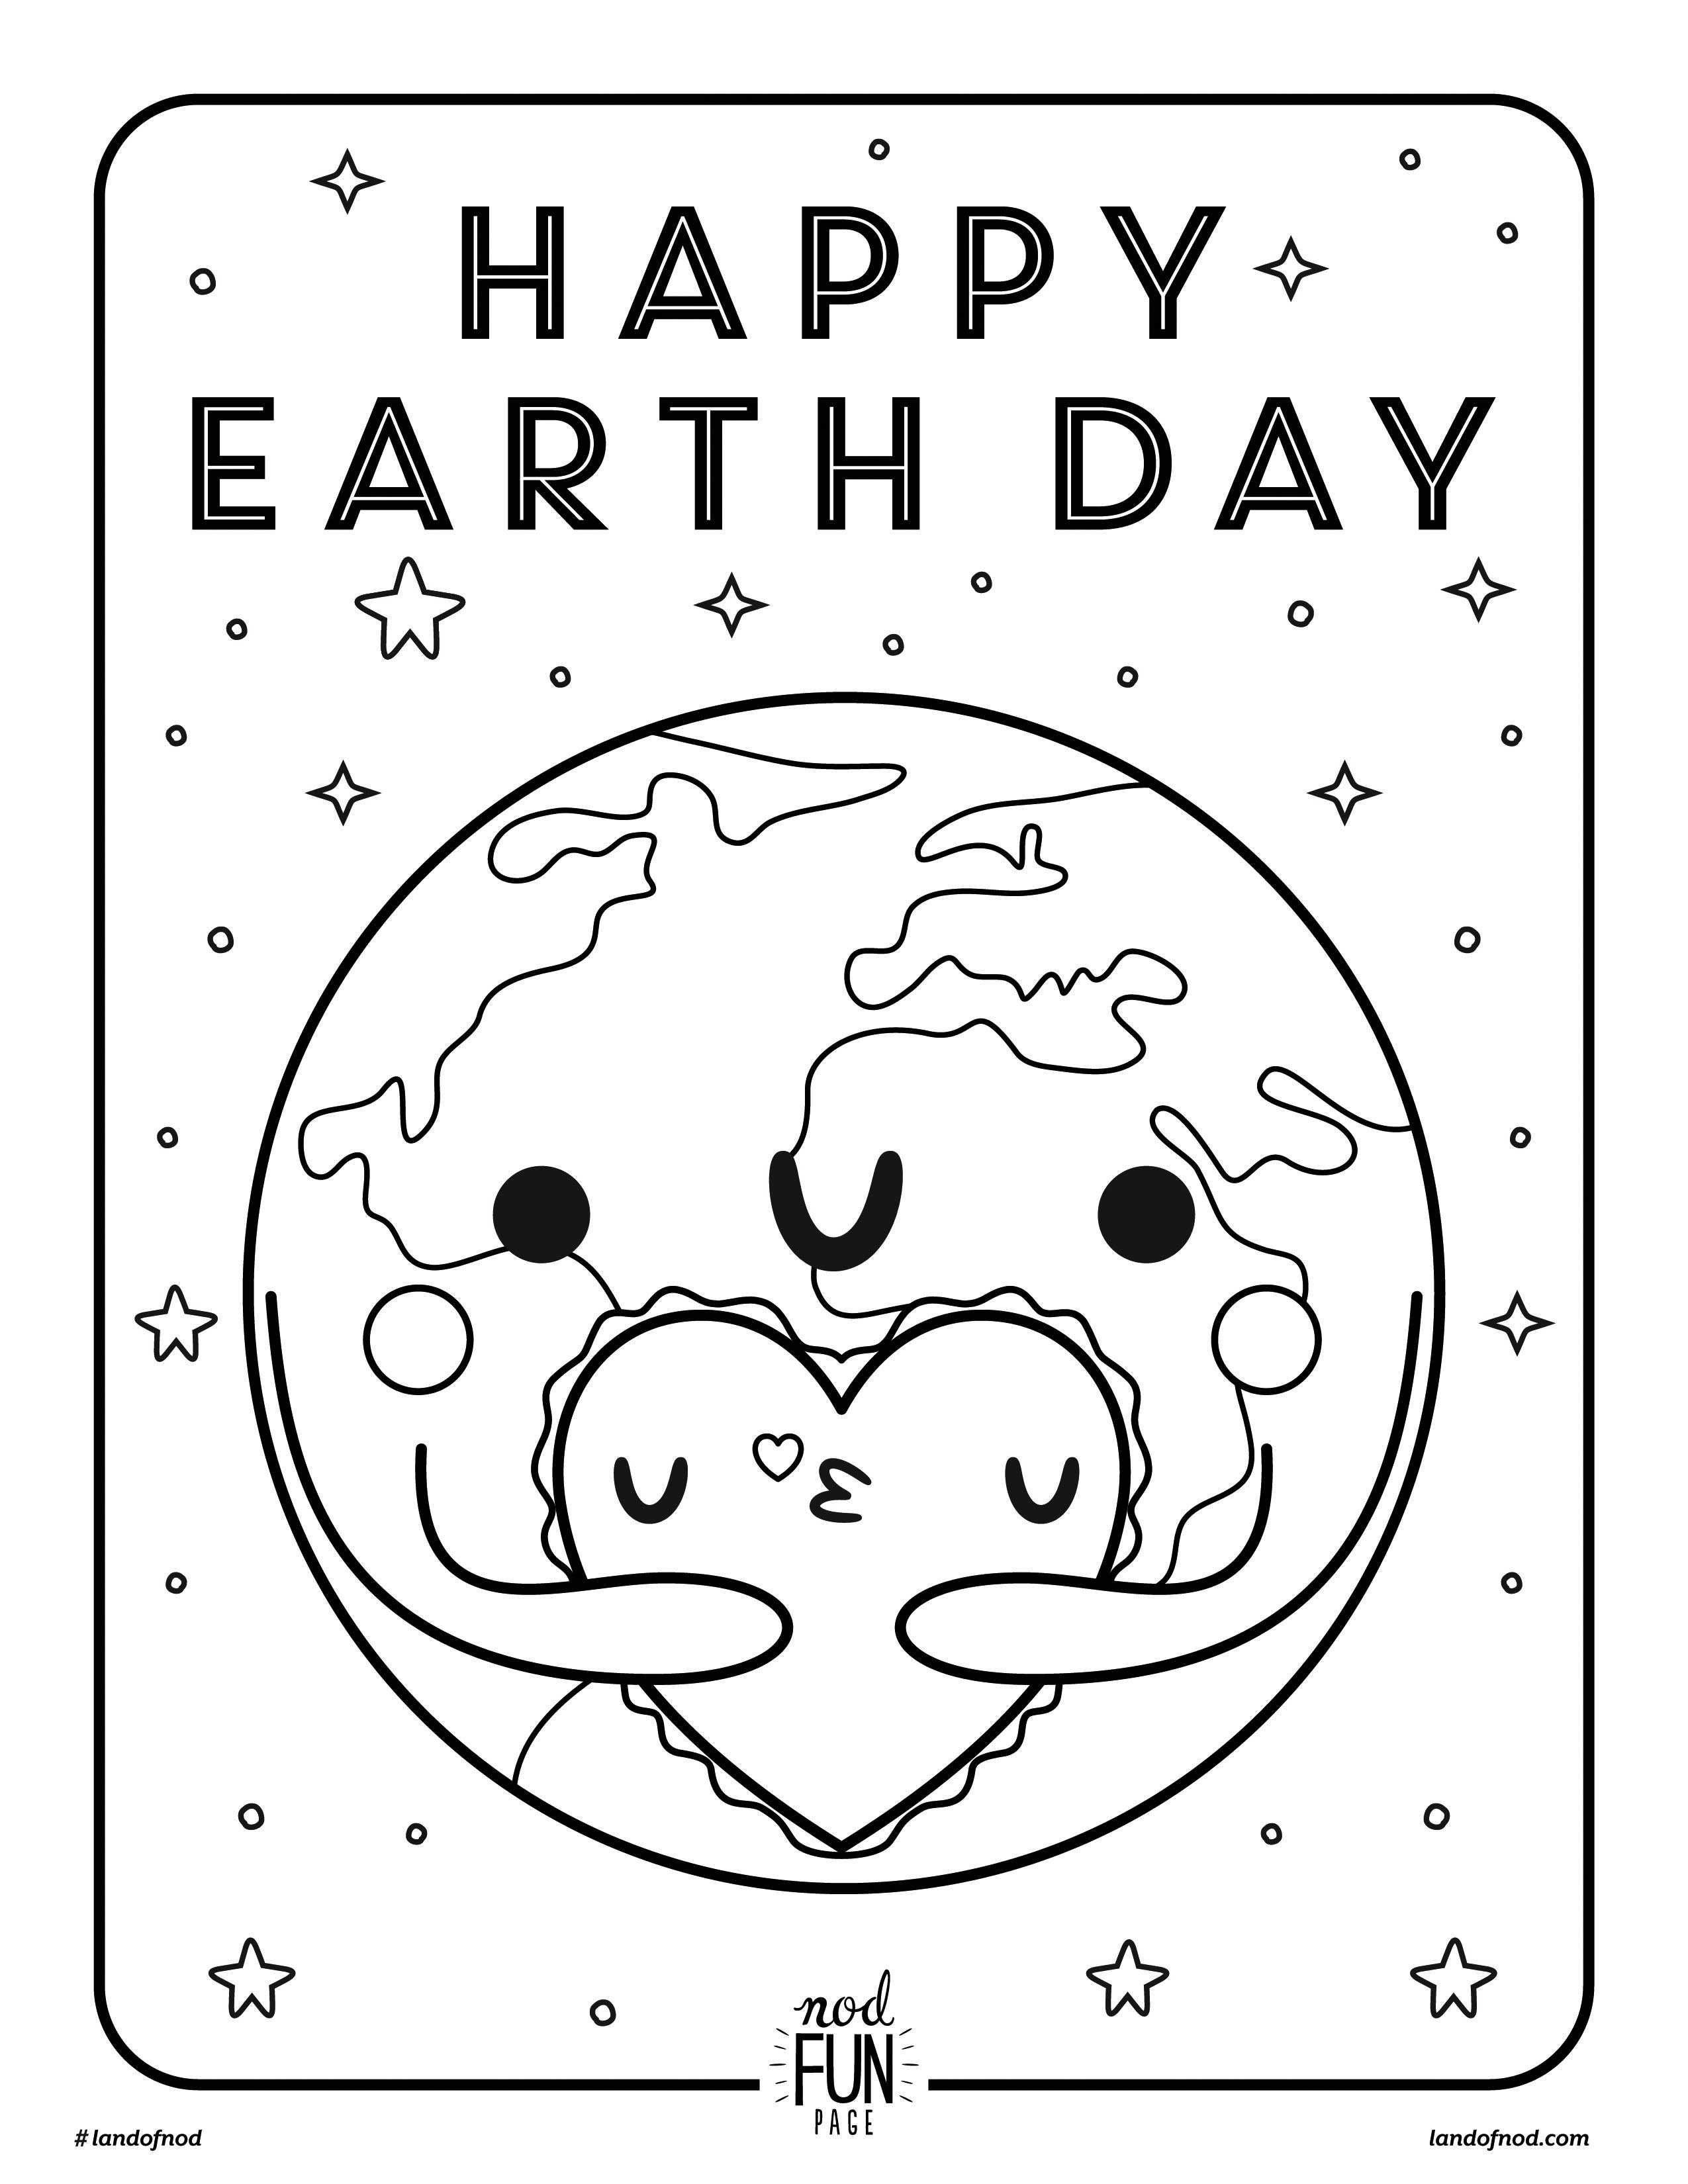 Free Printable Coloring Page: Earth Day | Crate&kids Blog - Free Printable Earth Pictures